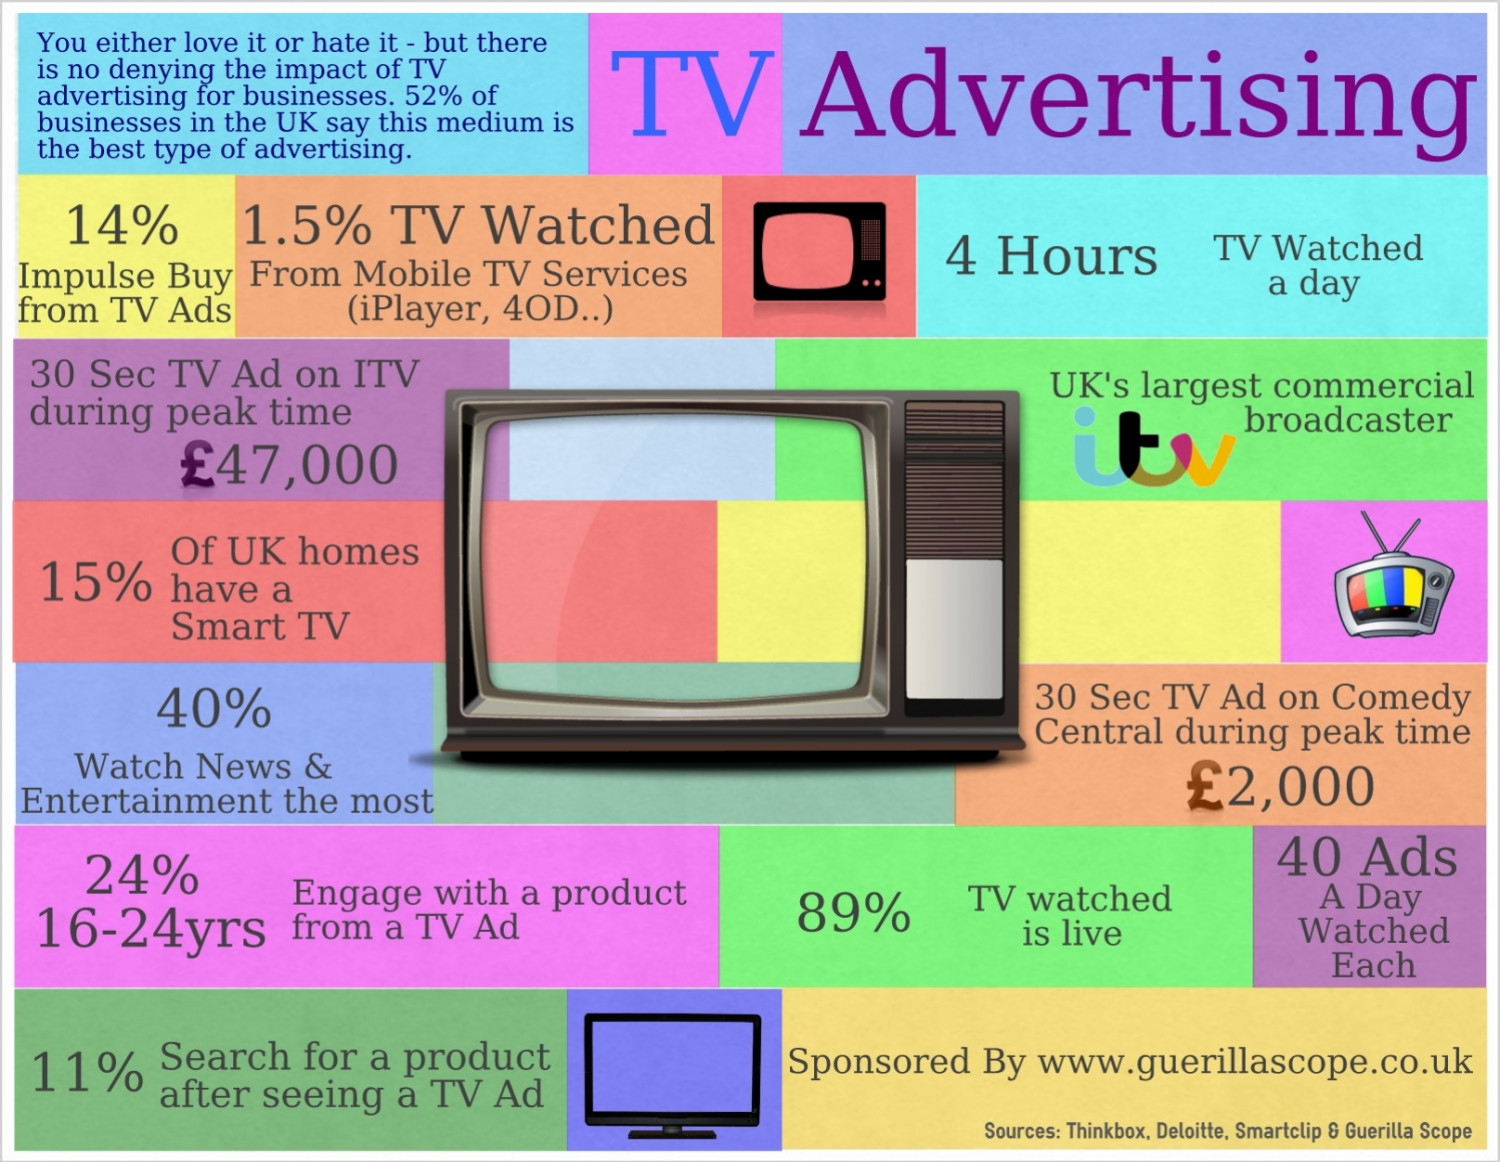 TV Advertising Facts Infographic